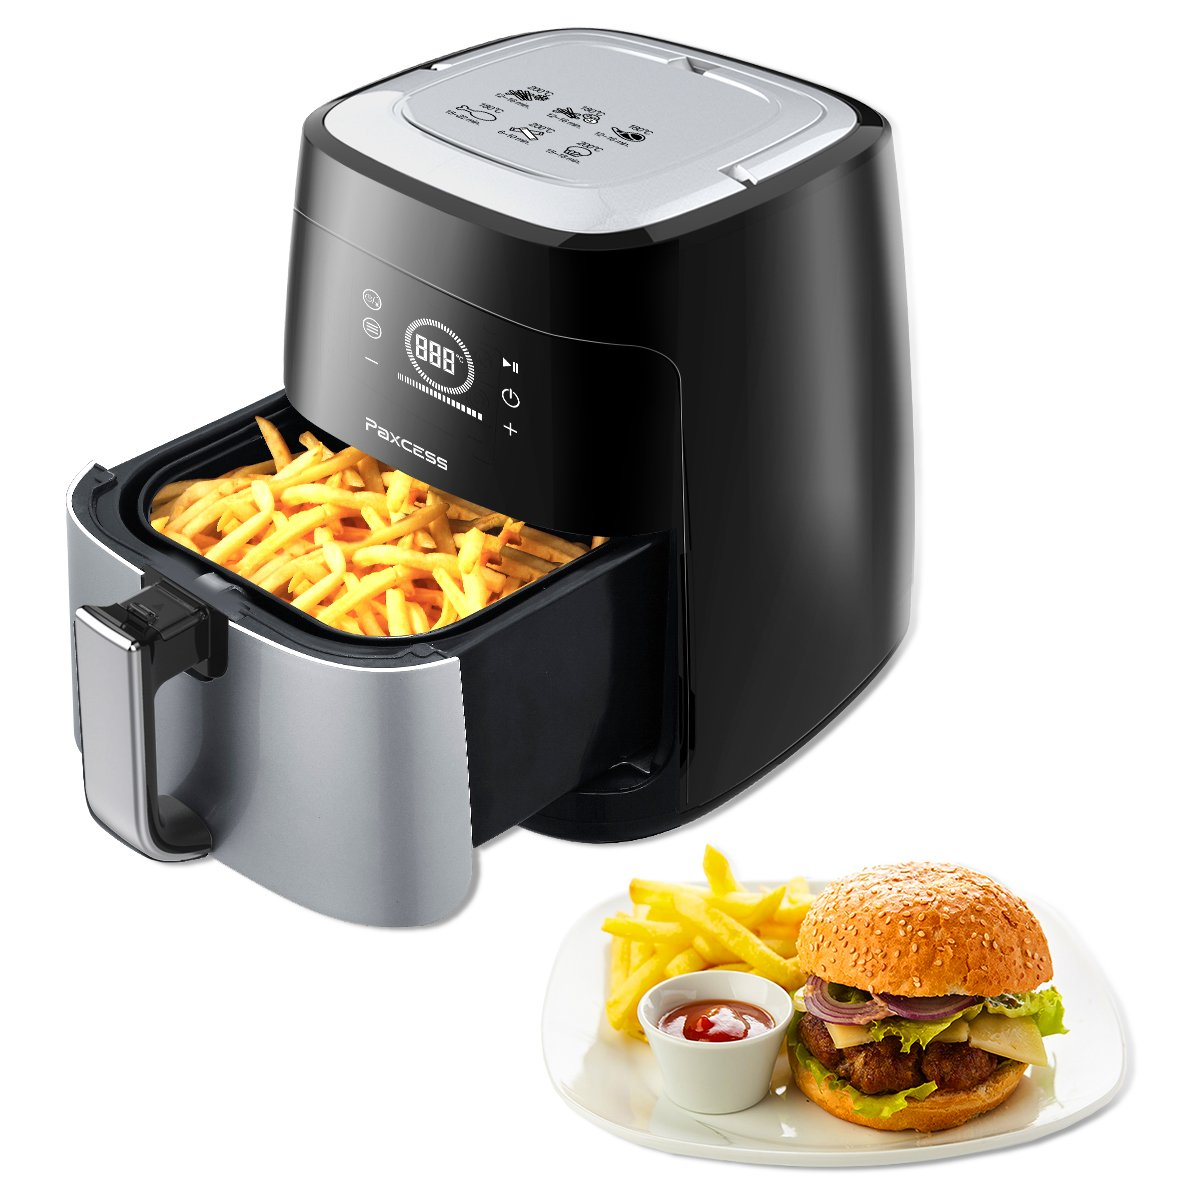 PAXCESS 3.7 Quart Touch Control Air Fryer Oil-free with 6 Cook Presets and and, a a Basket divider, Black